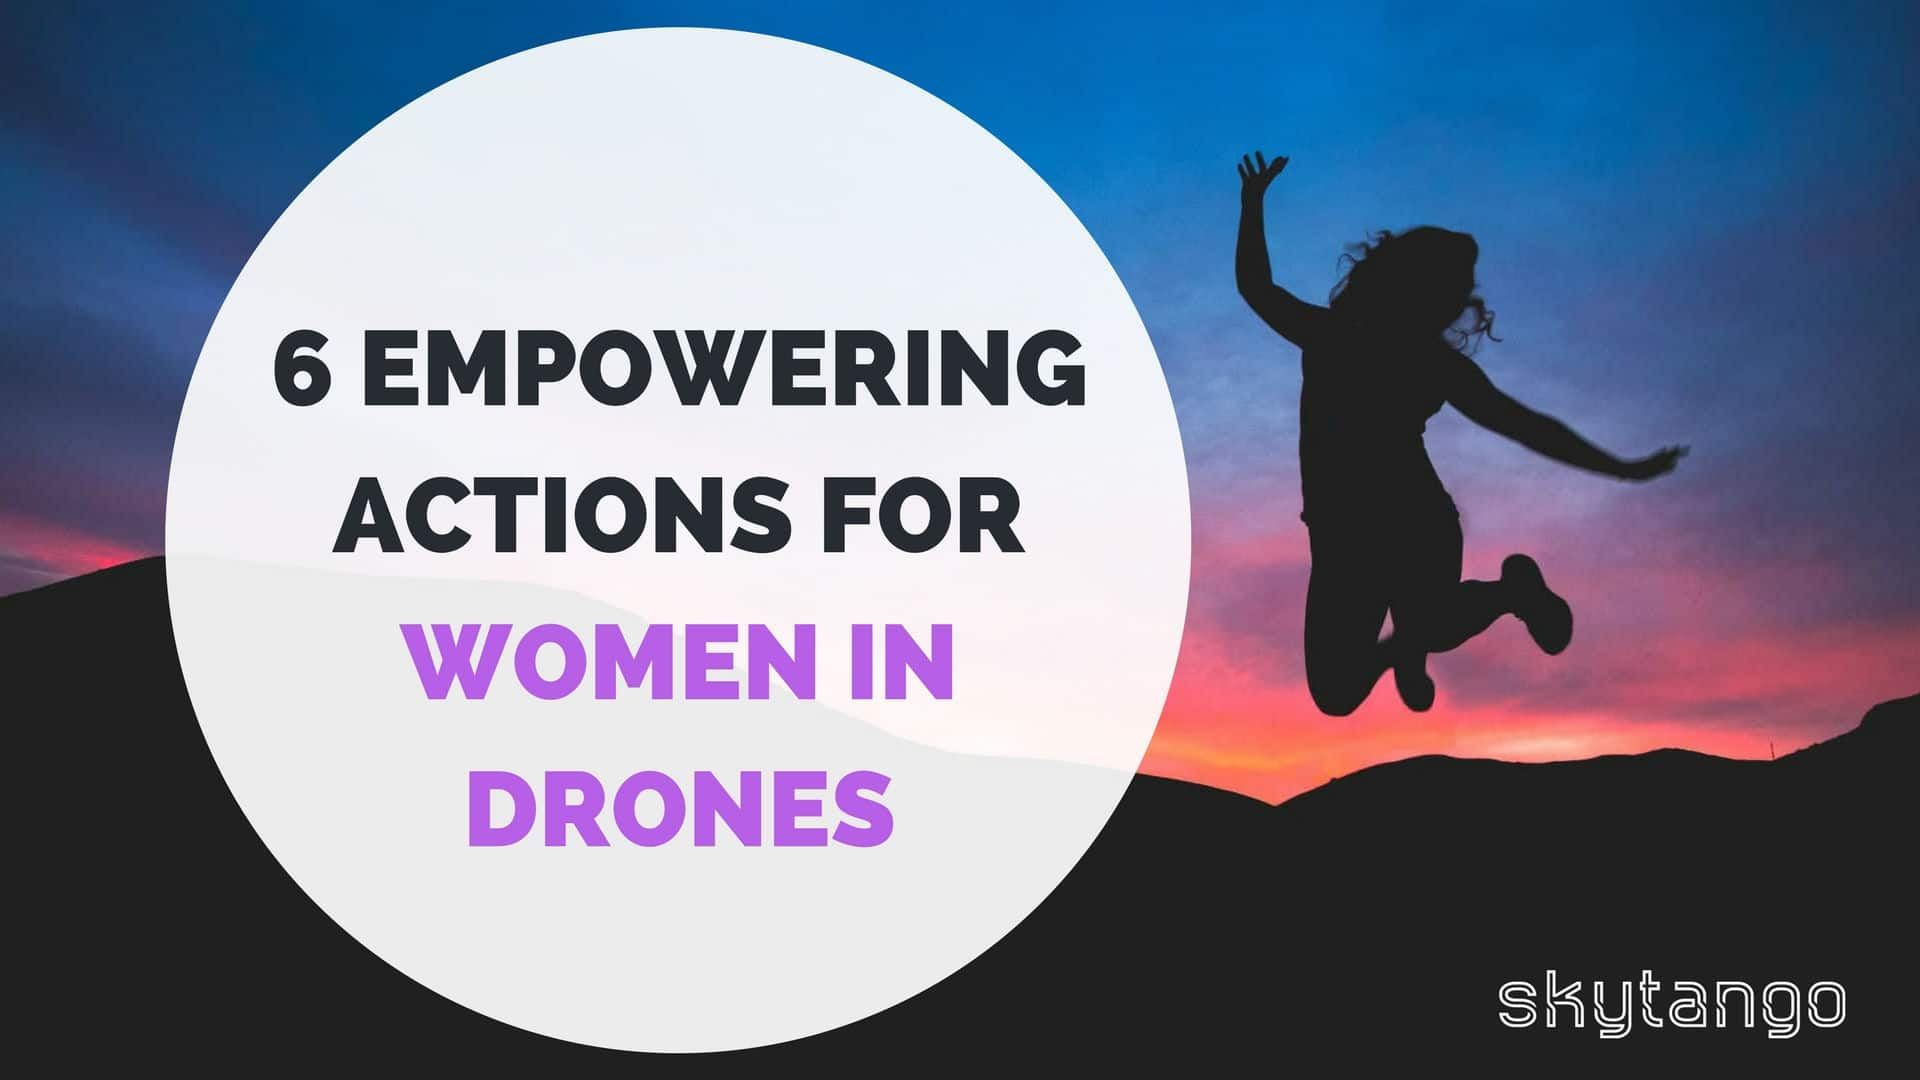 6 empowering actions for women in drones